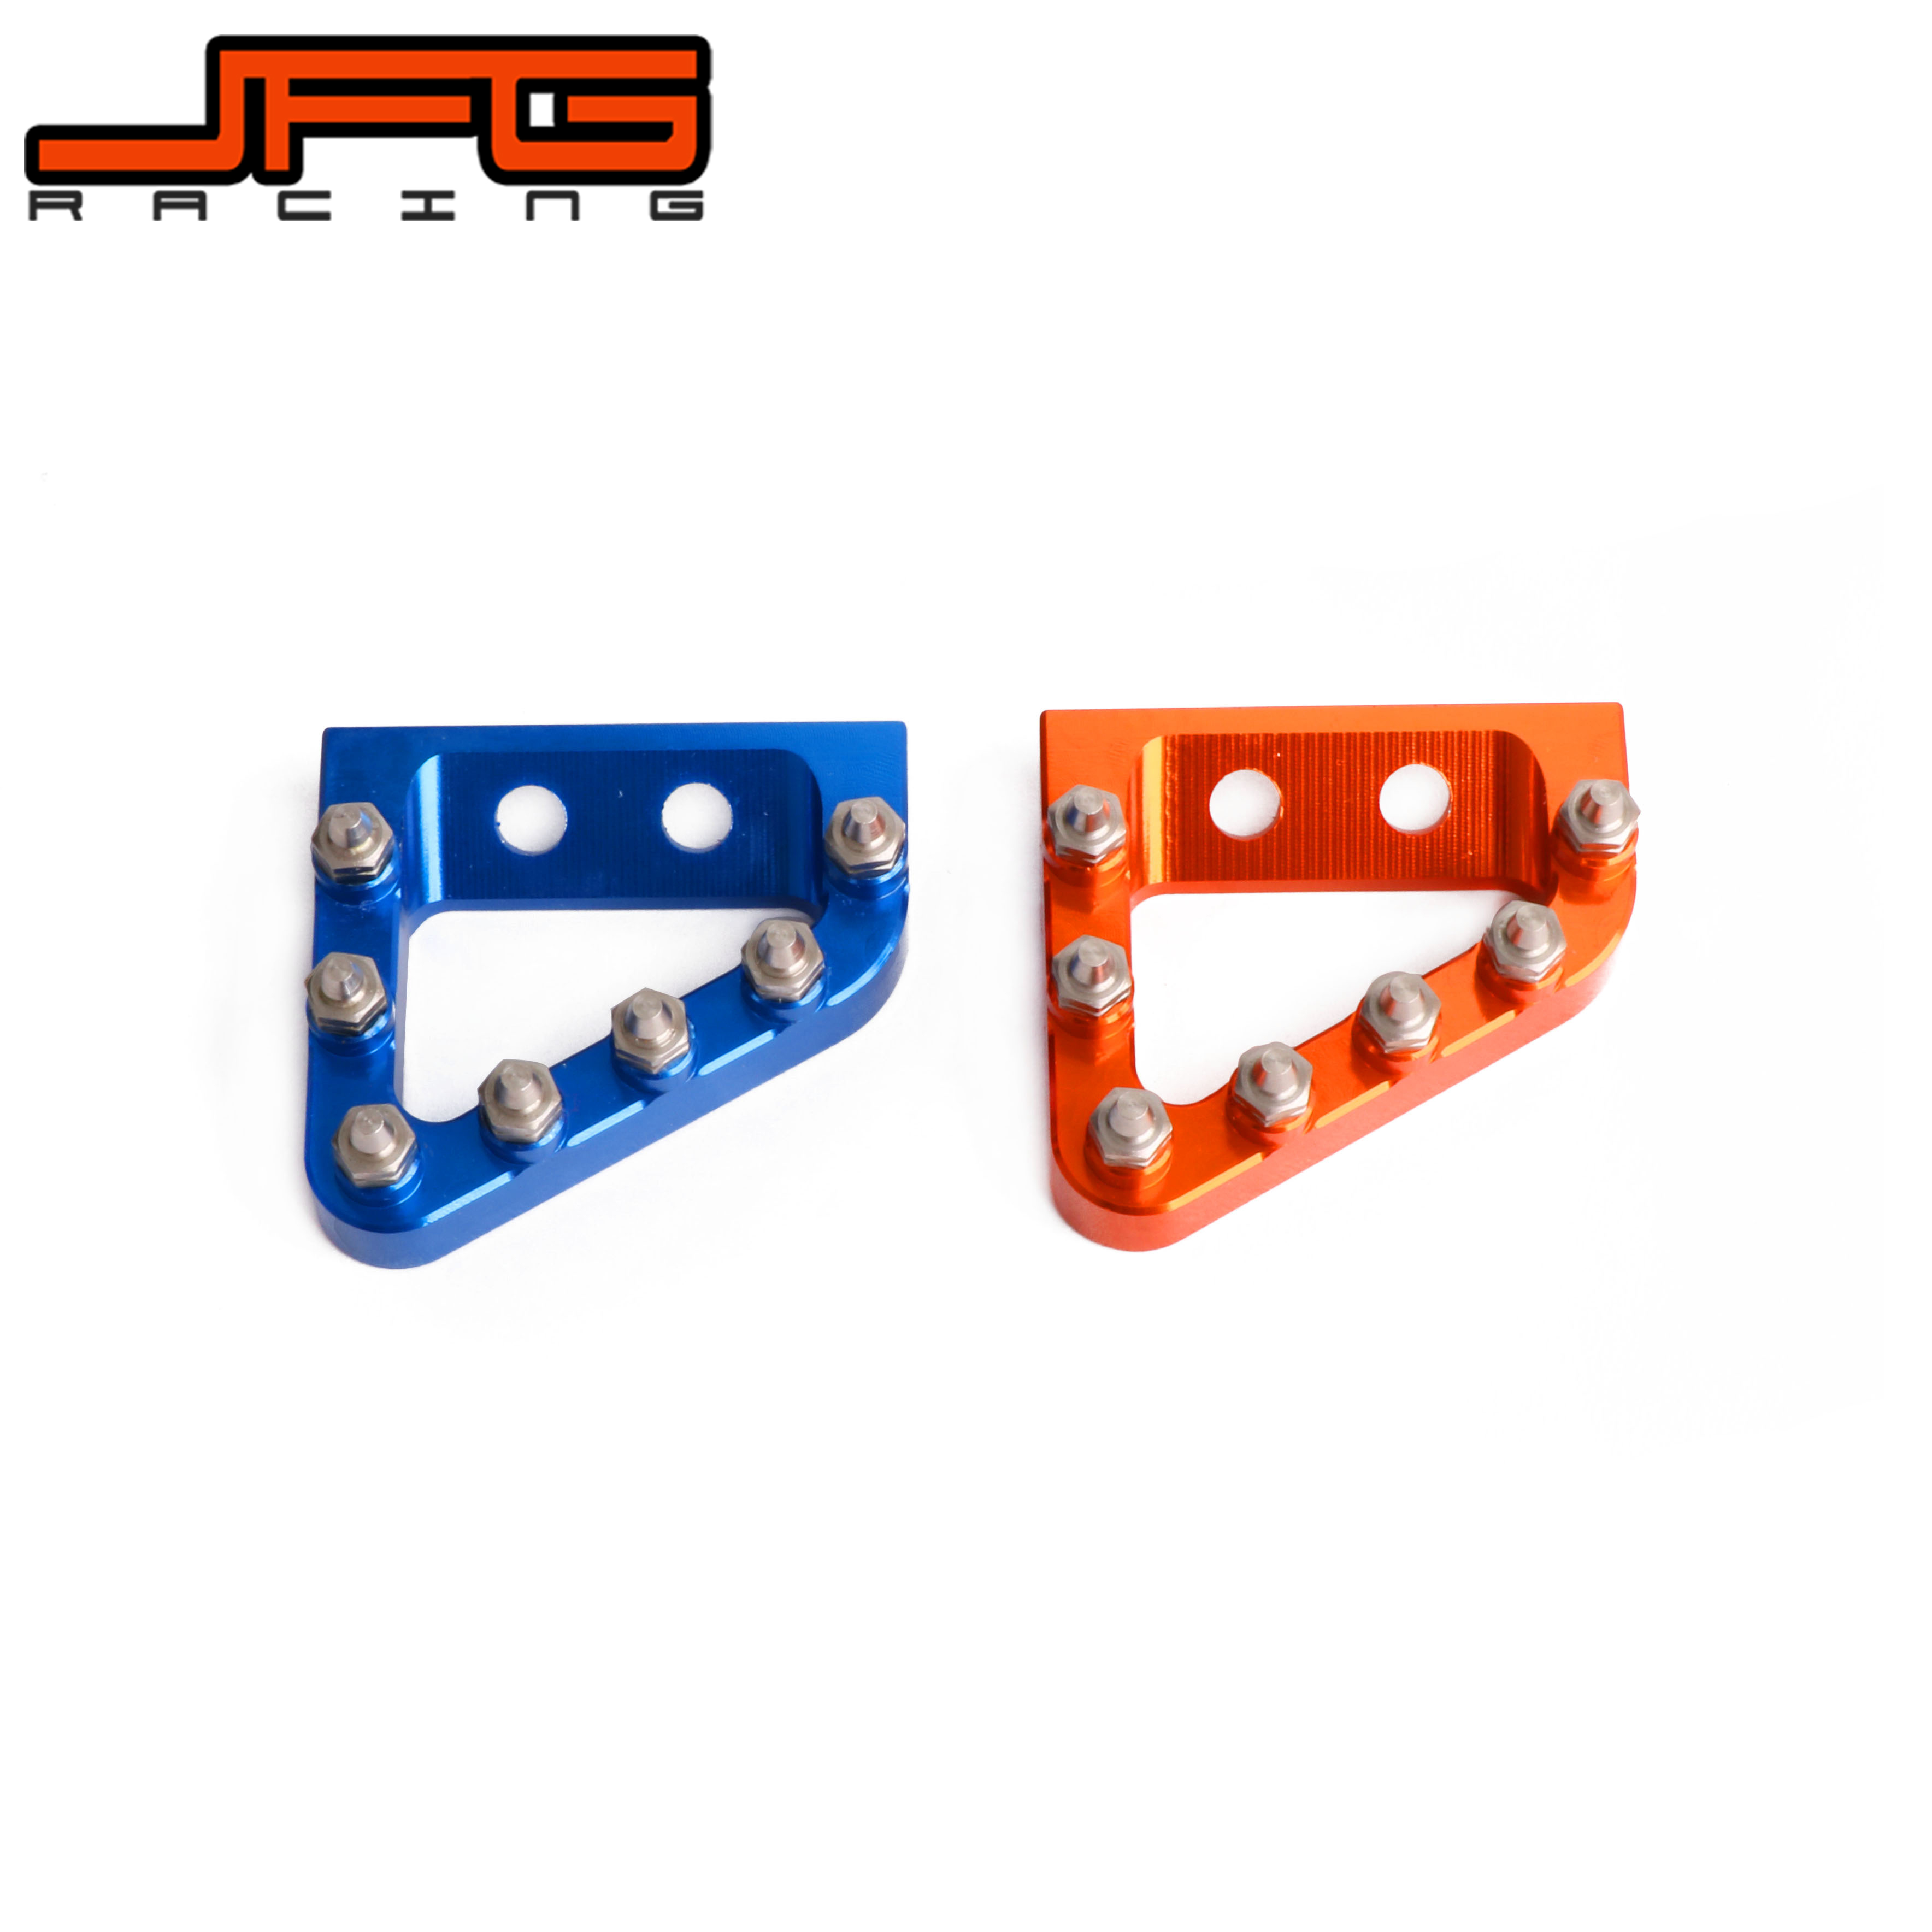 цена на Rear Brake Gerl Shifter Lever Pedal Step Tips For KTM SX SXF EXC EXCF XCF XCW 125-500 TC FC FE FX FS TE TX 50-501 2016 2017 2018